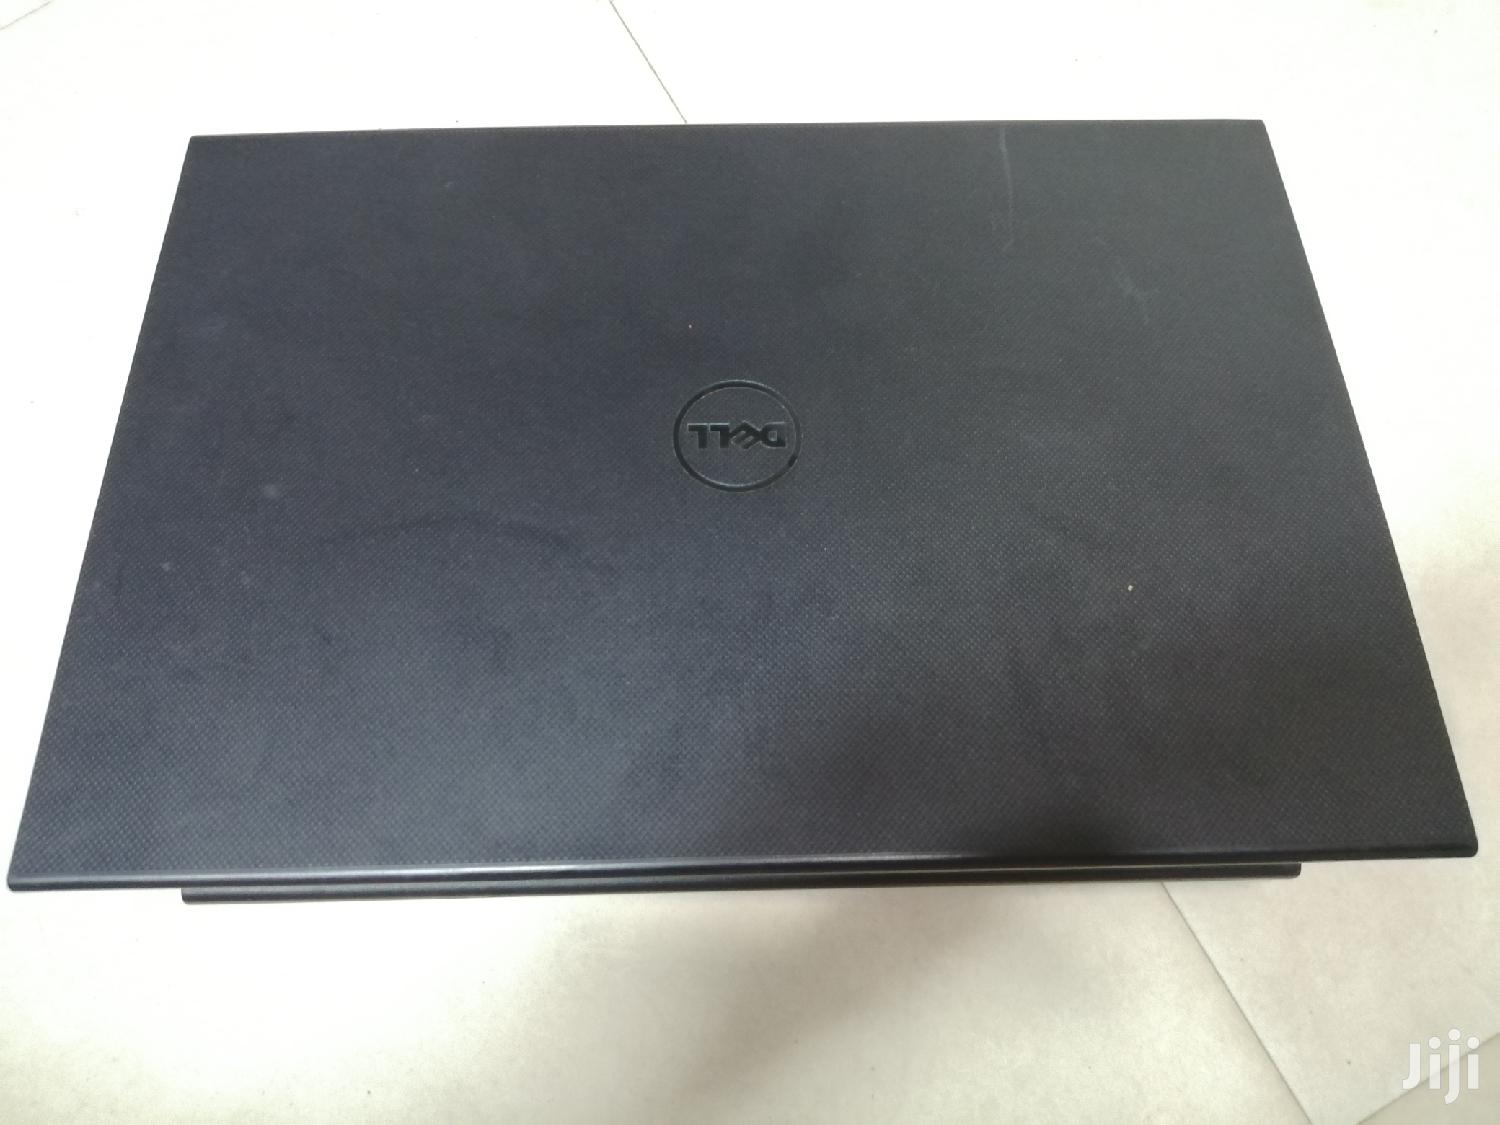 Archive: Laptop Dell Inspiron 15 3000 4GB Intel Core i3 HDD 500GB